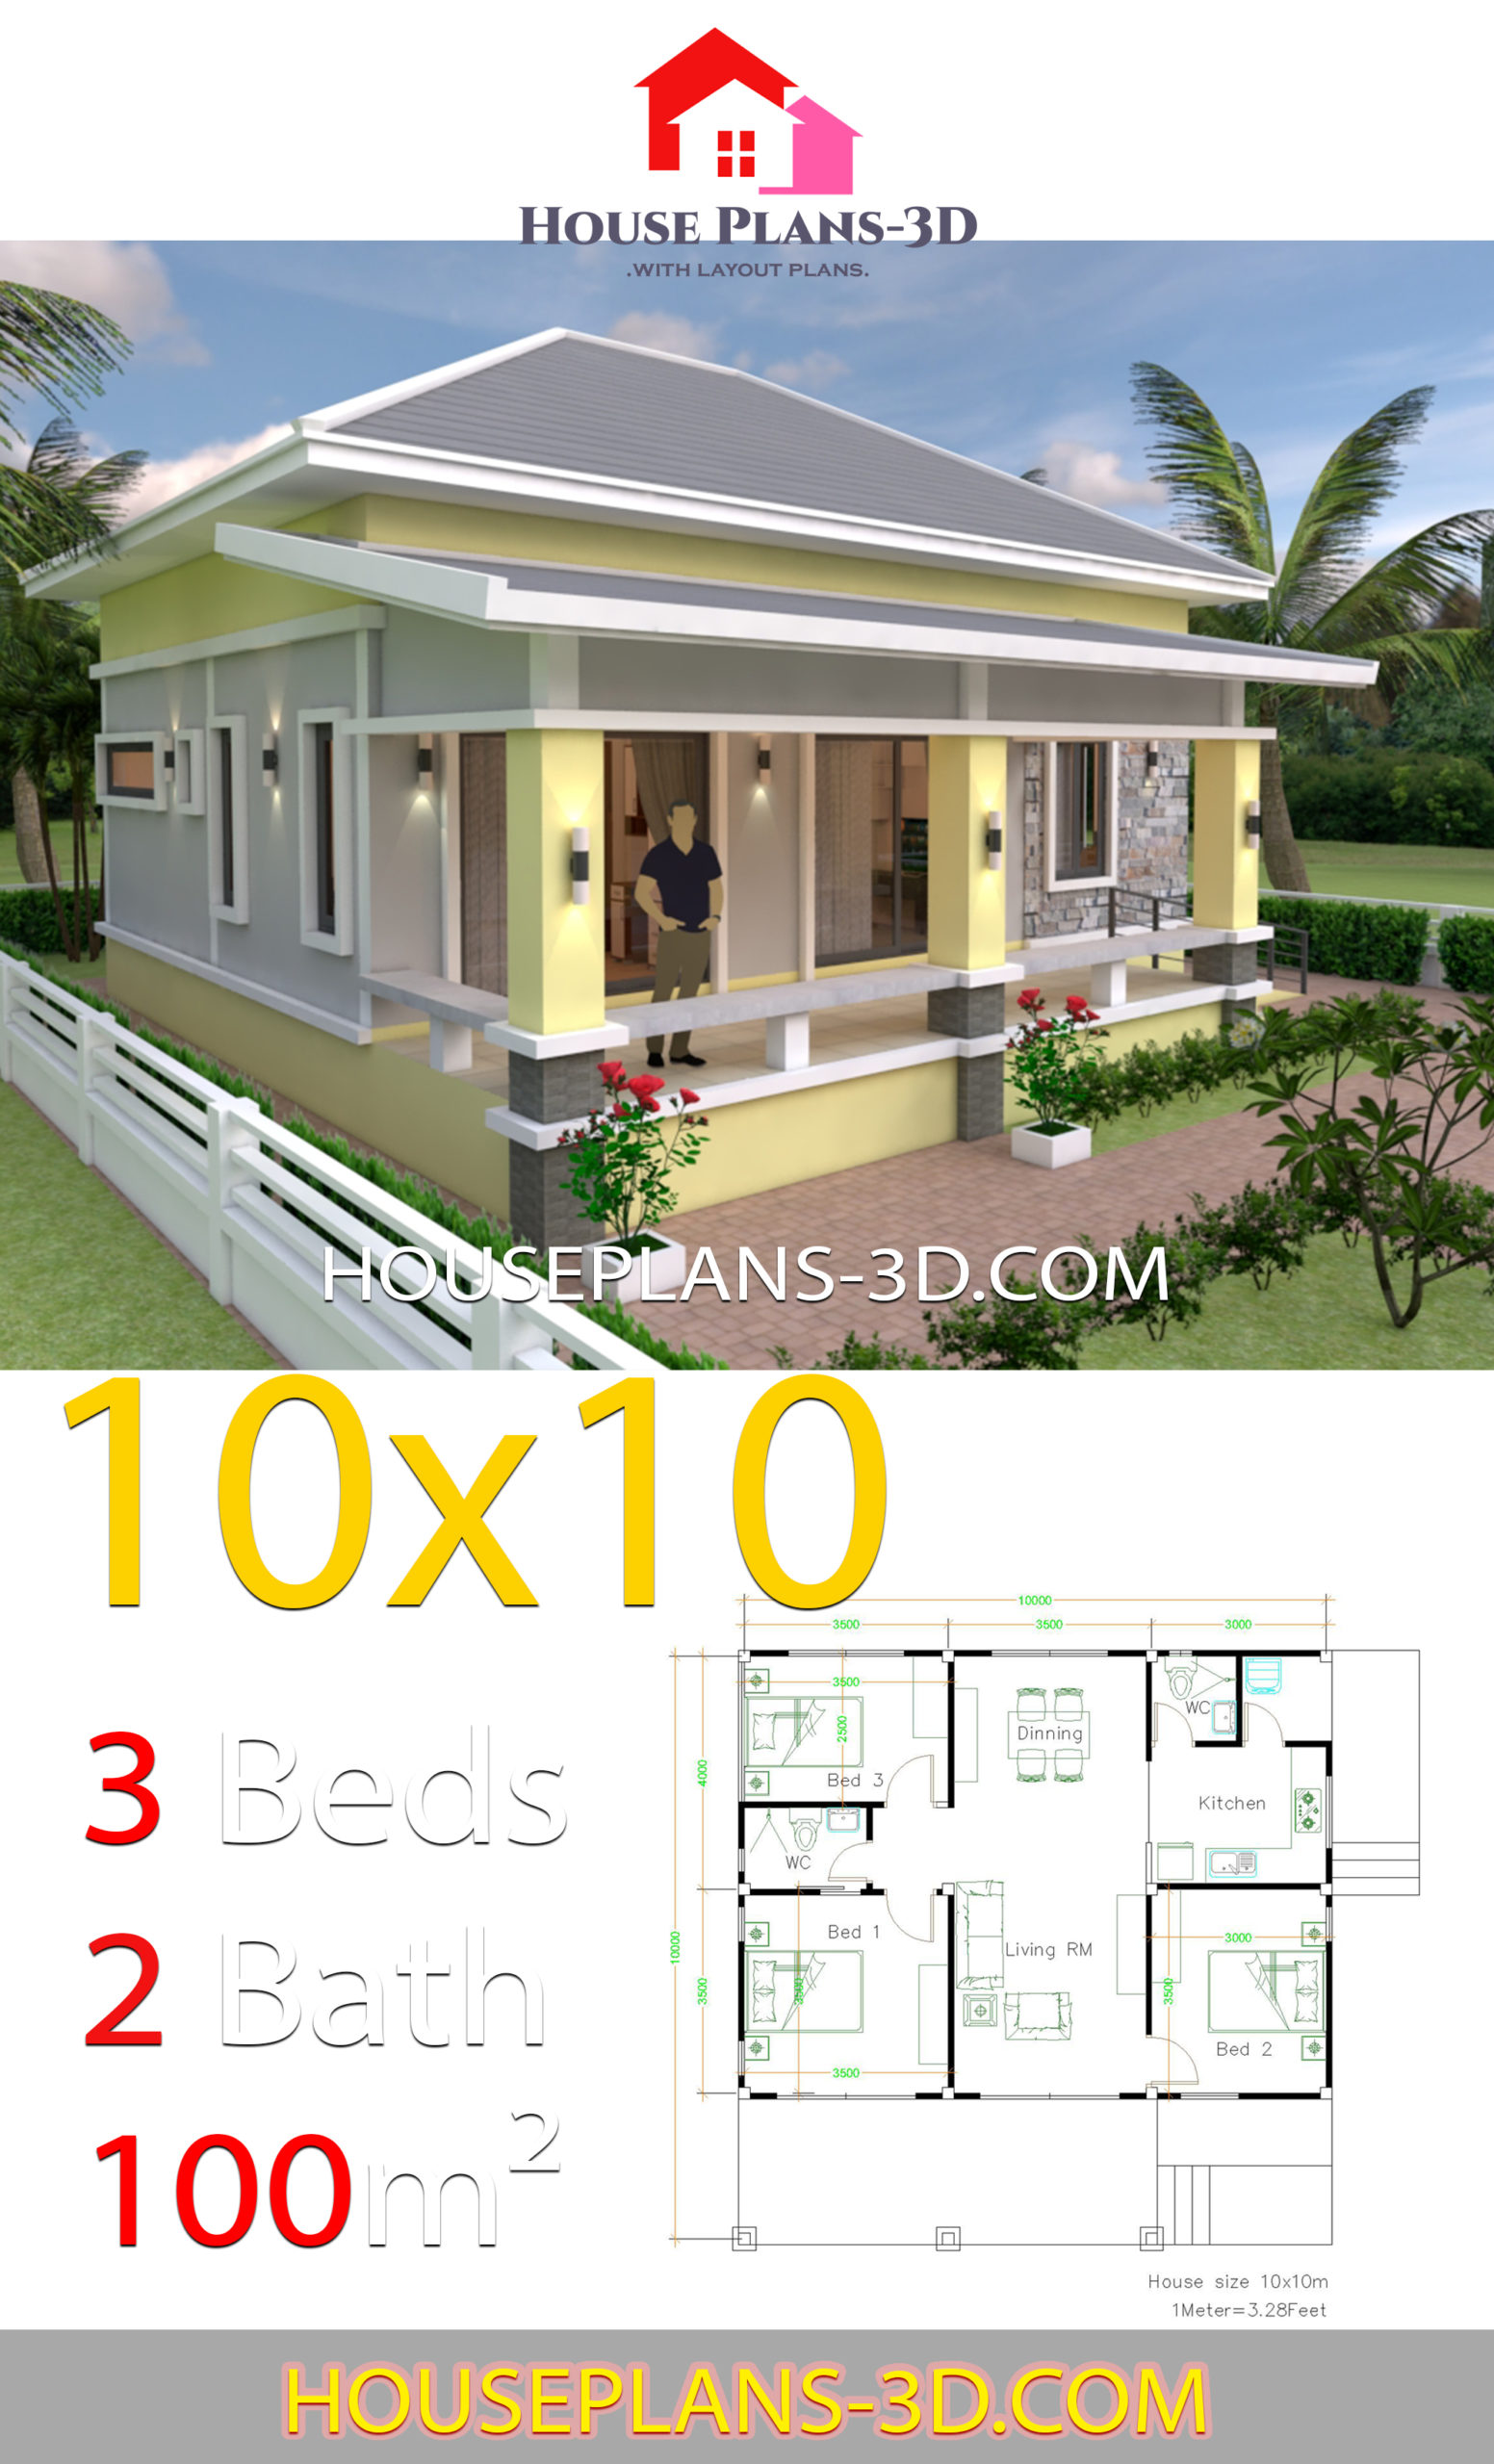 10x10 Bedroom Plans: House Design 10x10 With 3 Bedrooms Hip Roof